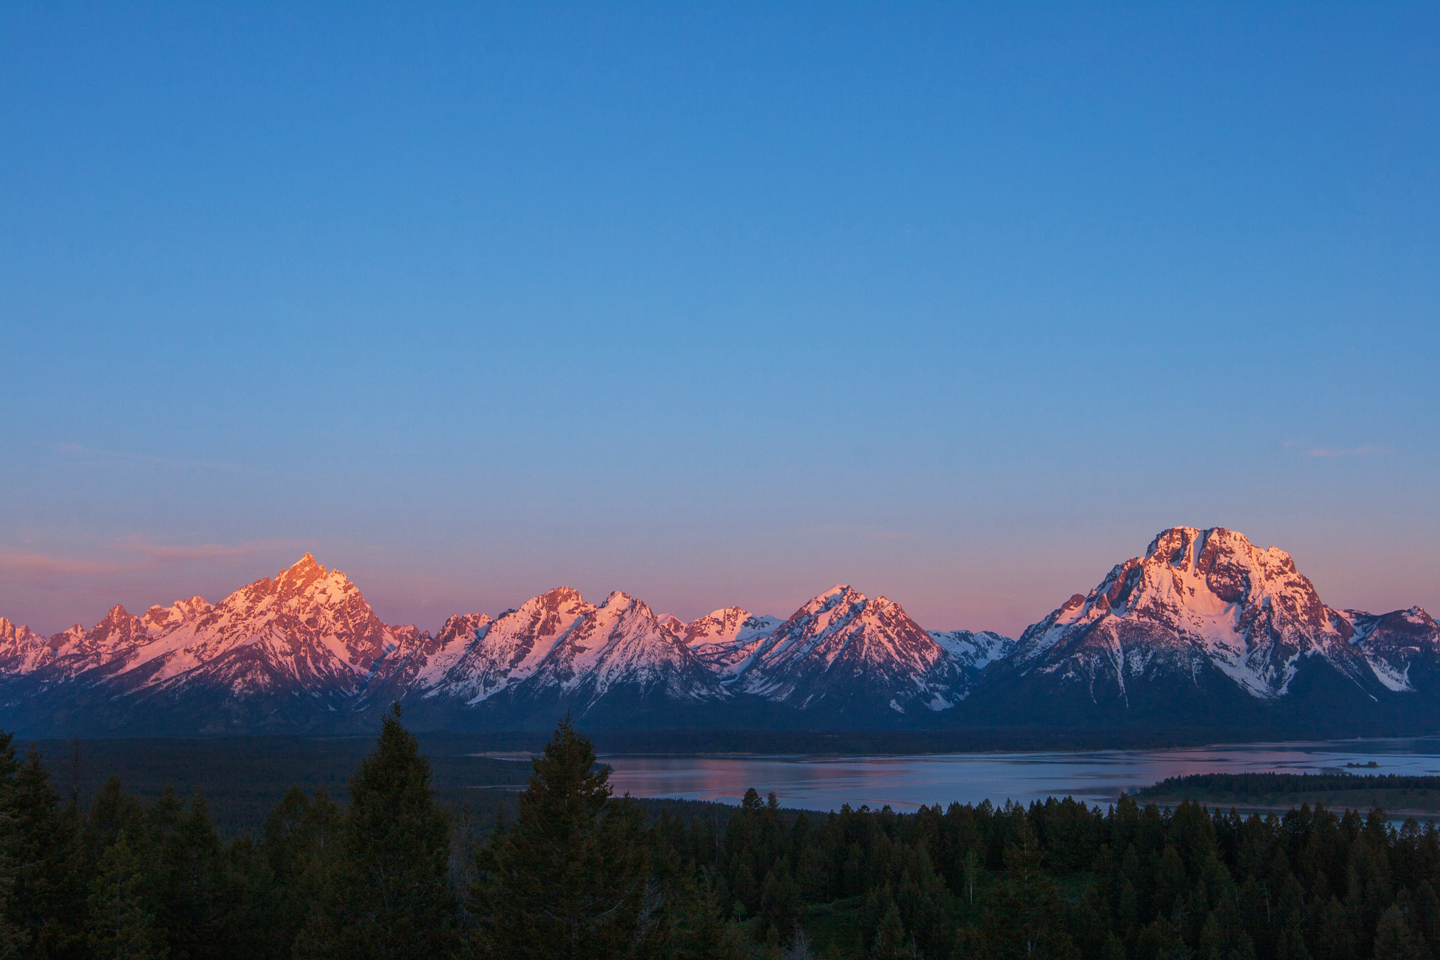 Grand-Tetons-View-Jackson-Lake-Lodge-Sunset